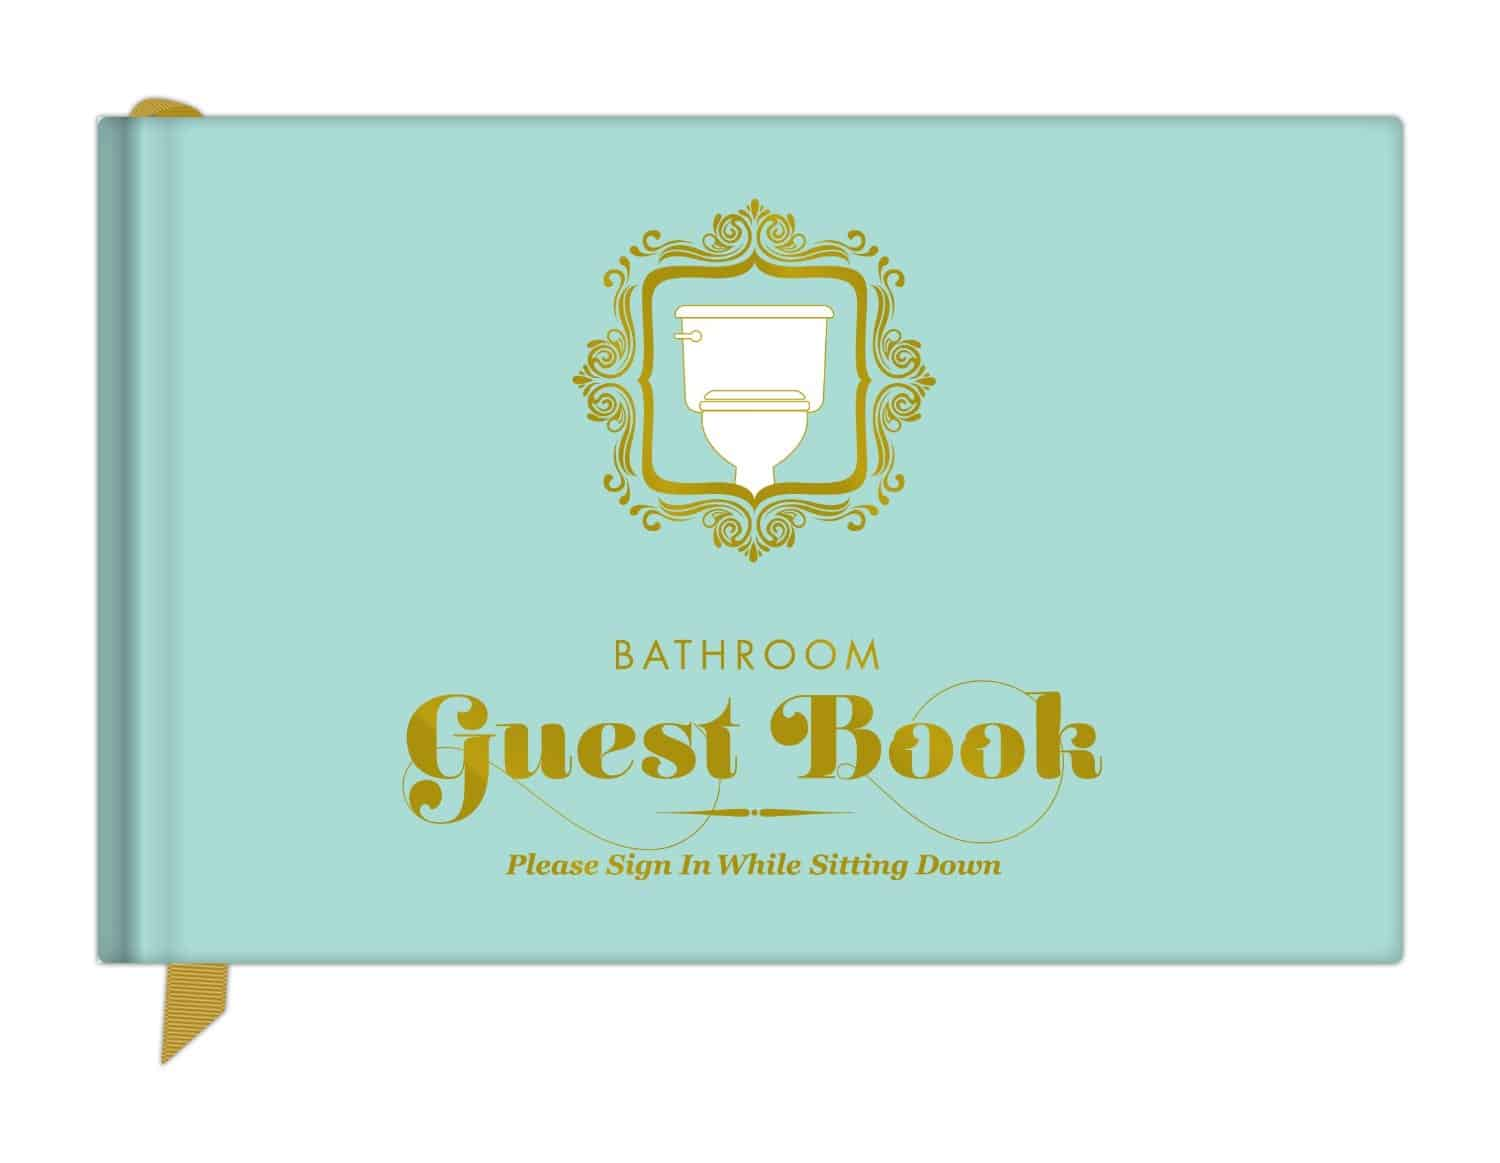 Knock Knock Bathroom Guest Book Fun Party House Accessory